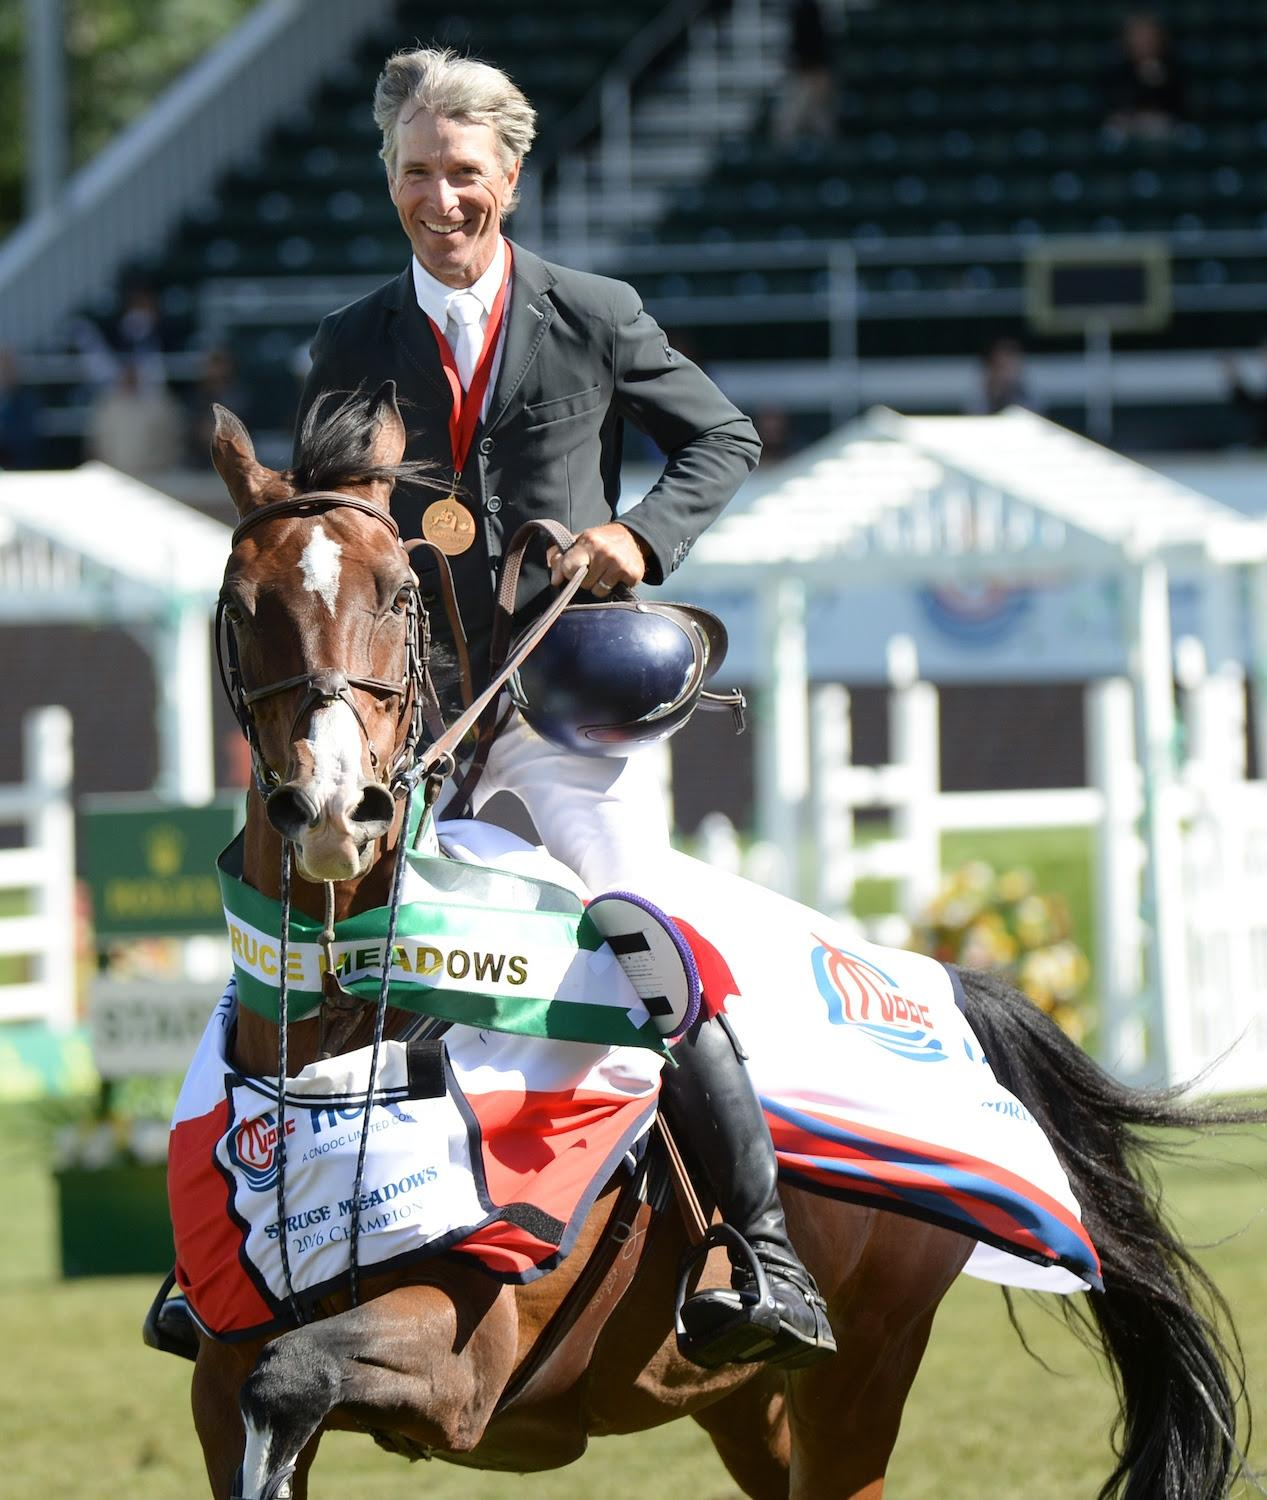 richard-spooner-cristallo-spruce-meadows-2016-victory-gallop.jpg